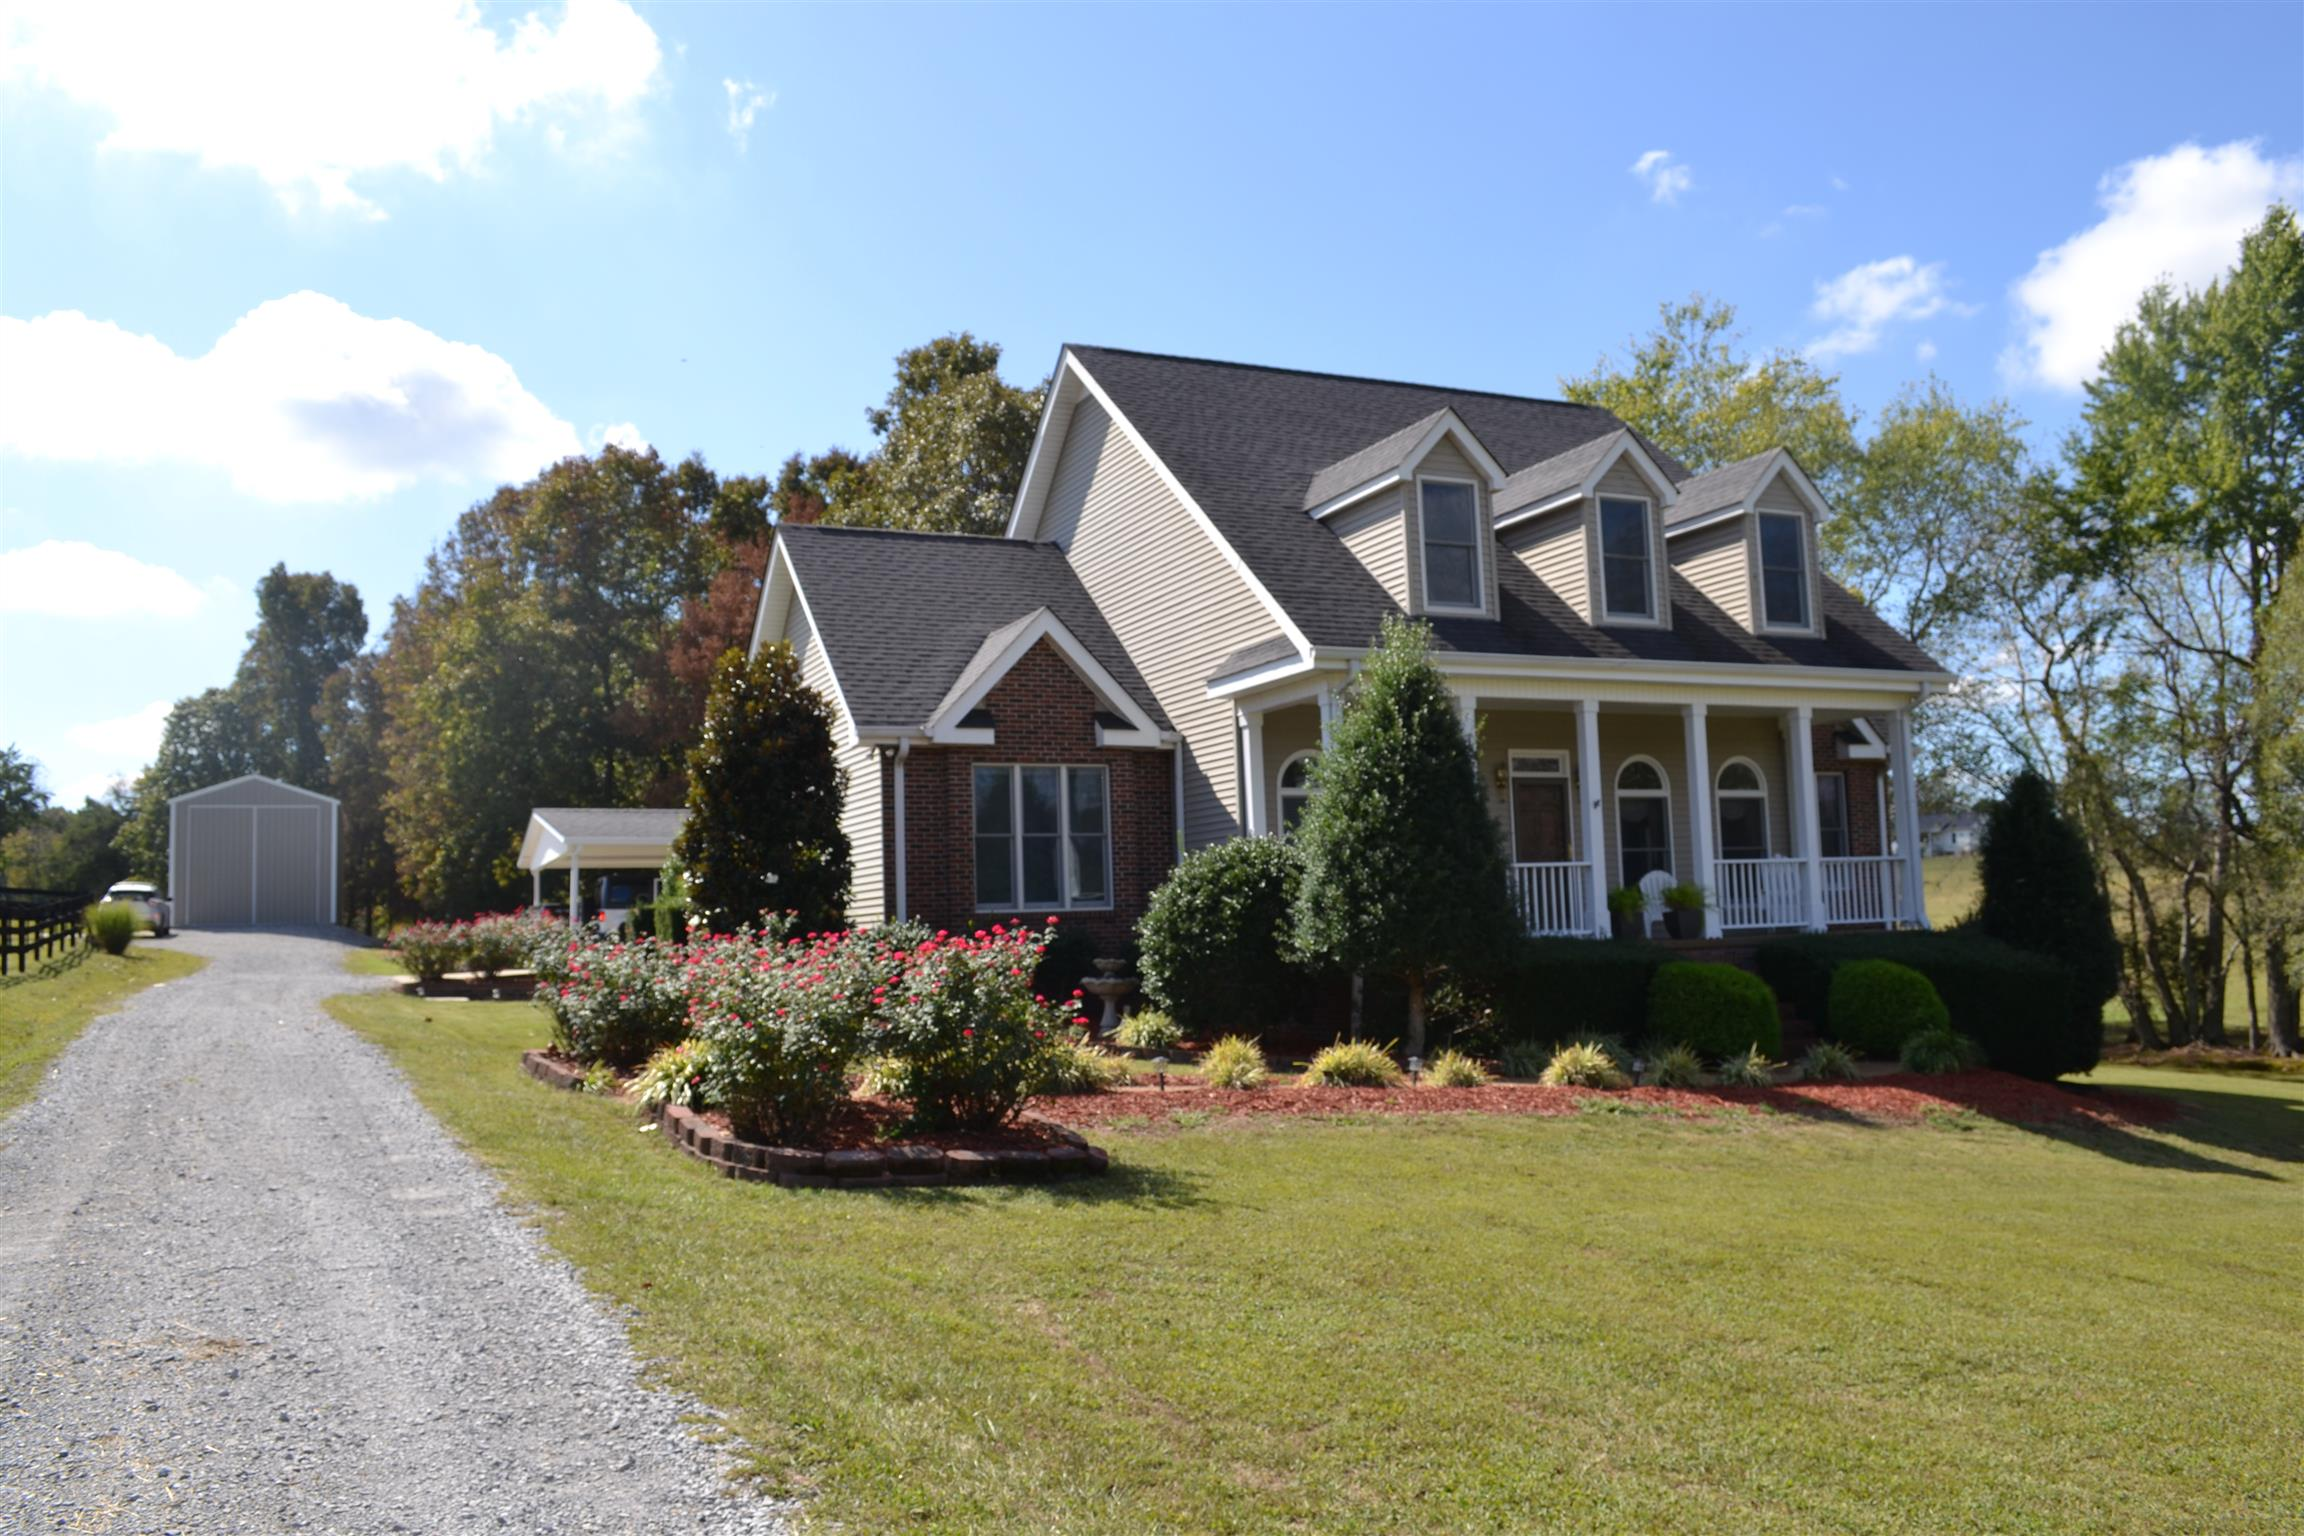 1955 Trace Creek Rd, MC EWEN, TN 37101 - MC EWEN, TN real estate listing